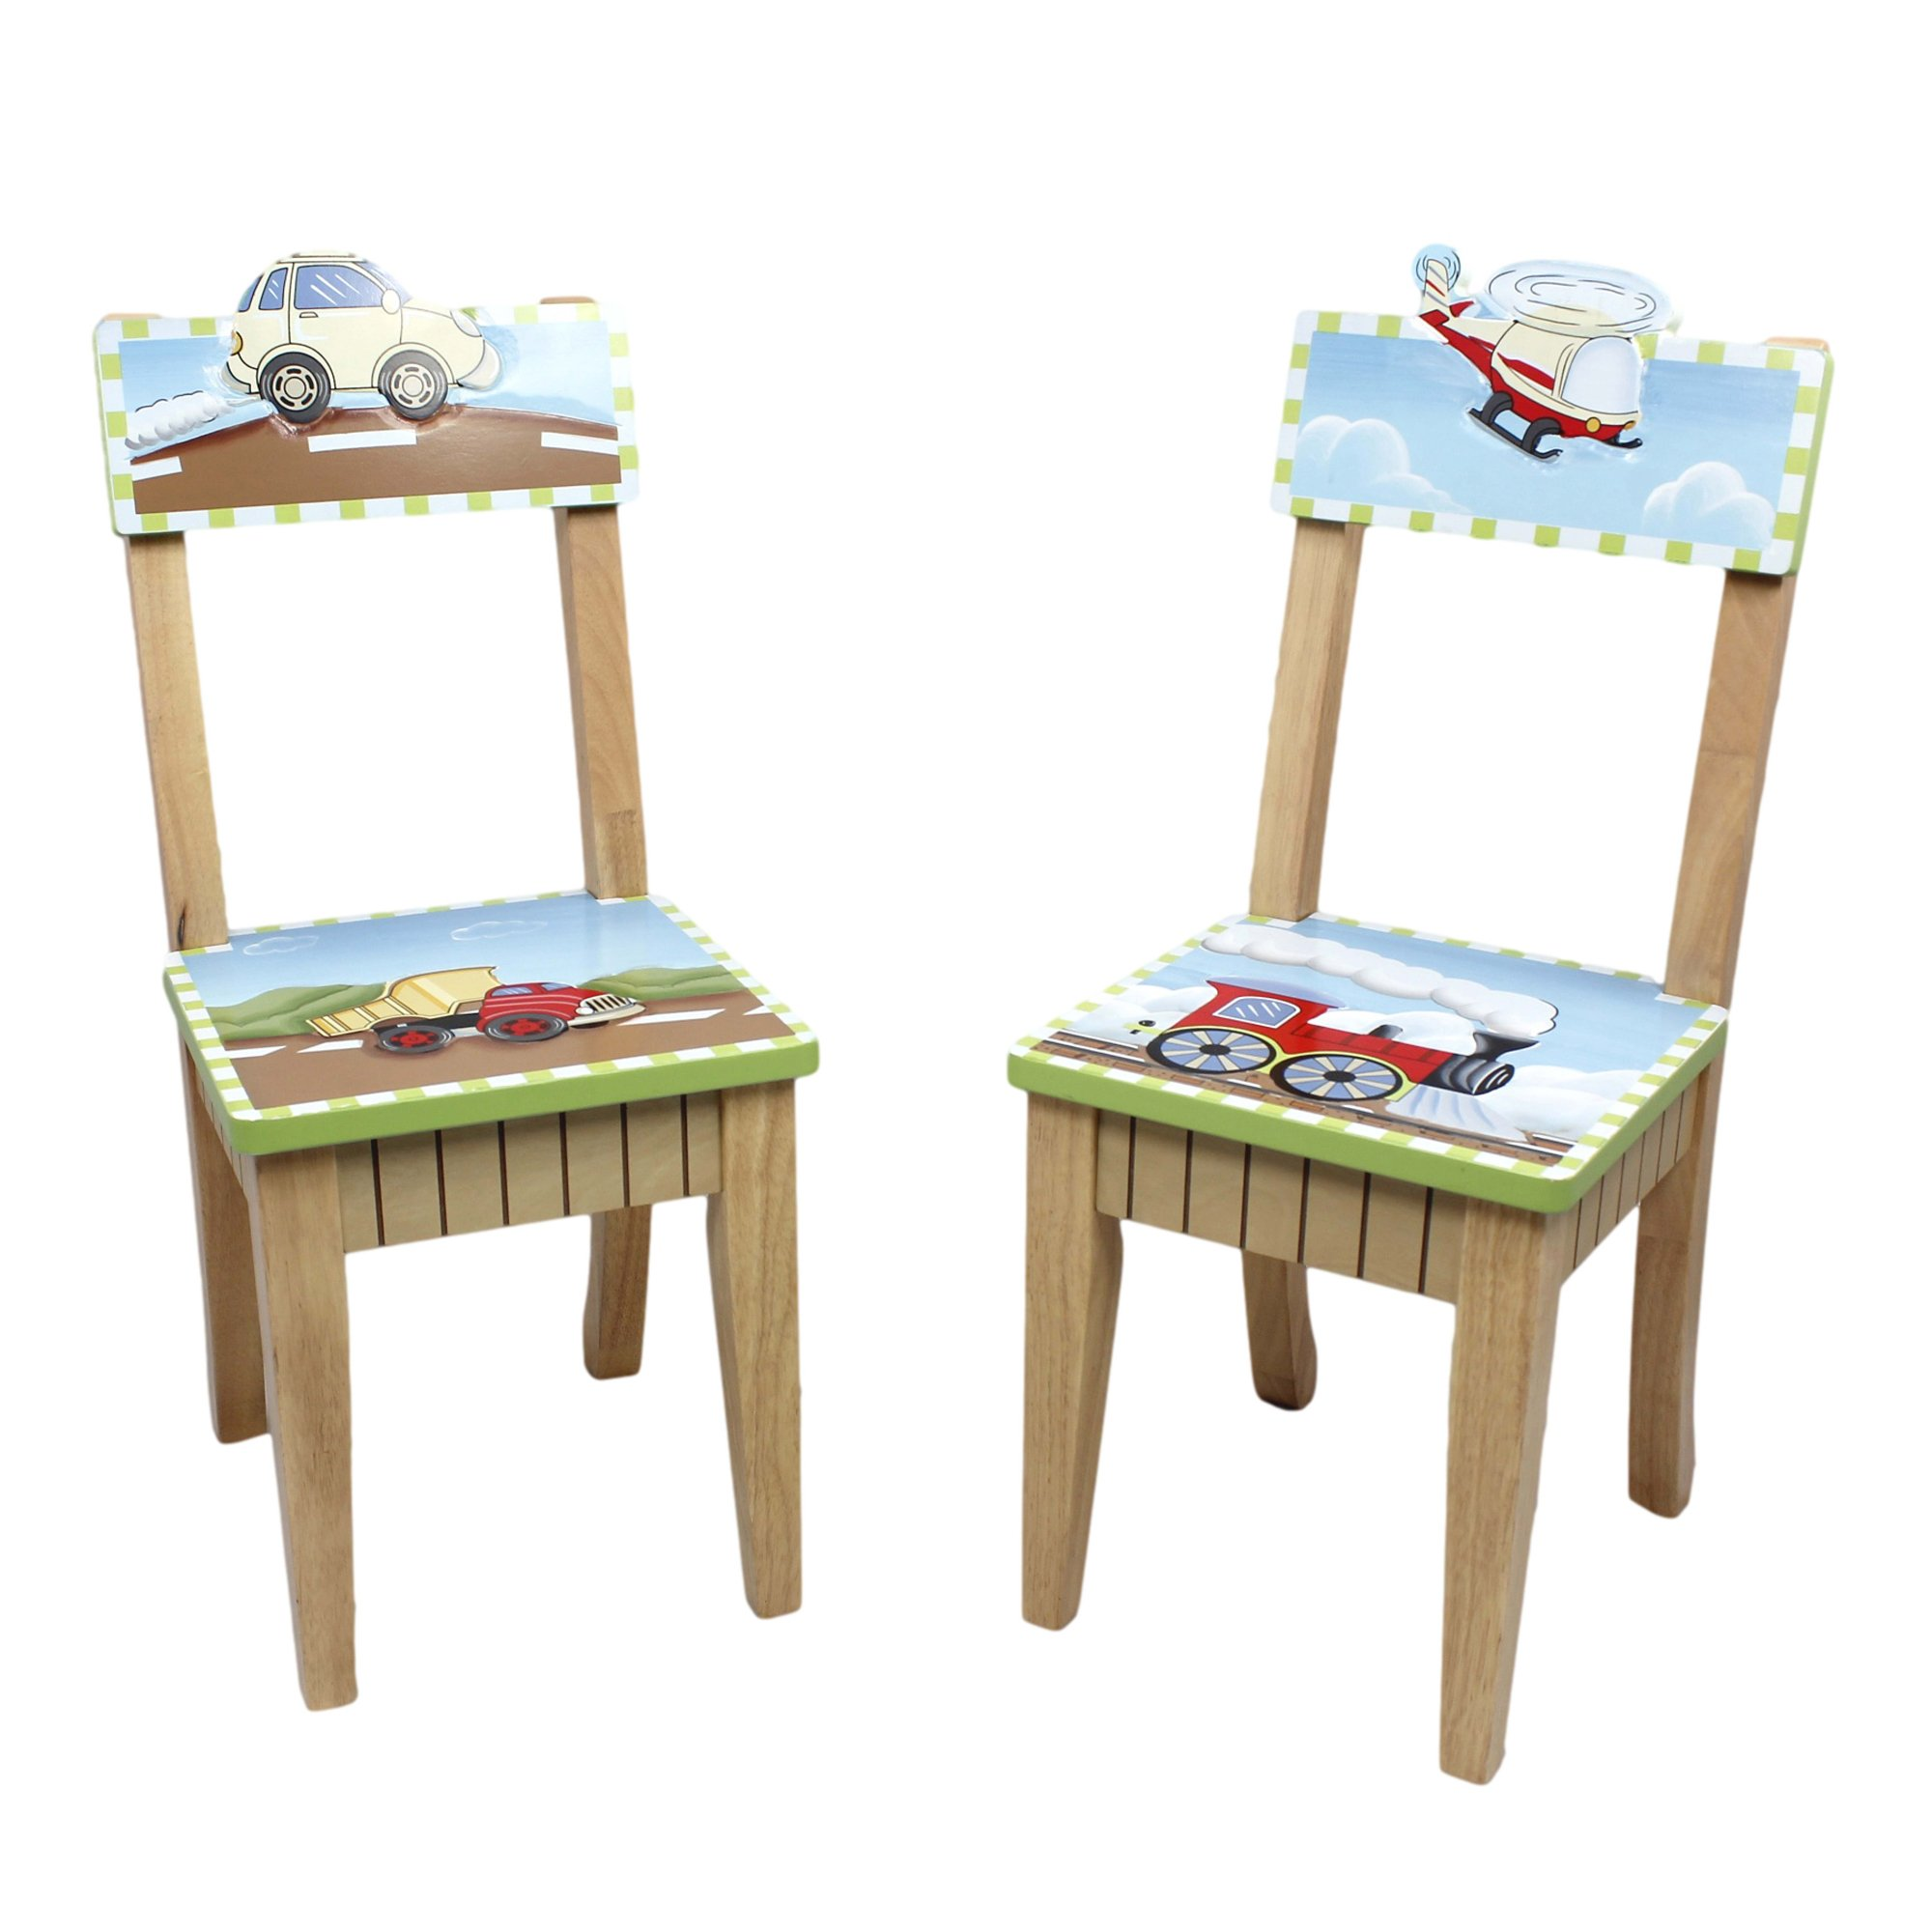 Fantasy Fields - Transportation Thematic Kids Wooden 2 Chairs Set |Imagination Inspiring Hand Crafted & Hand Painted Details   Non-Toxic, Lead Free Water-based Paint